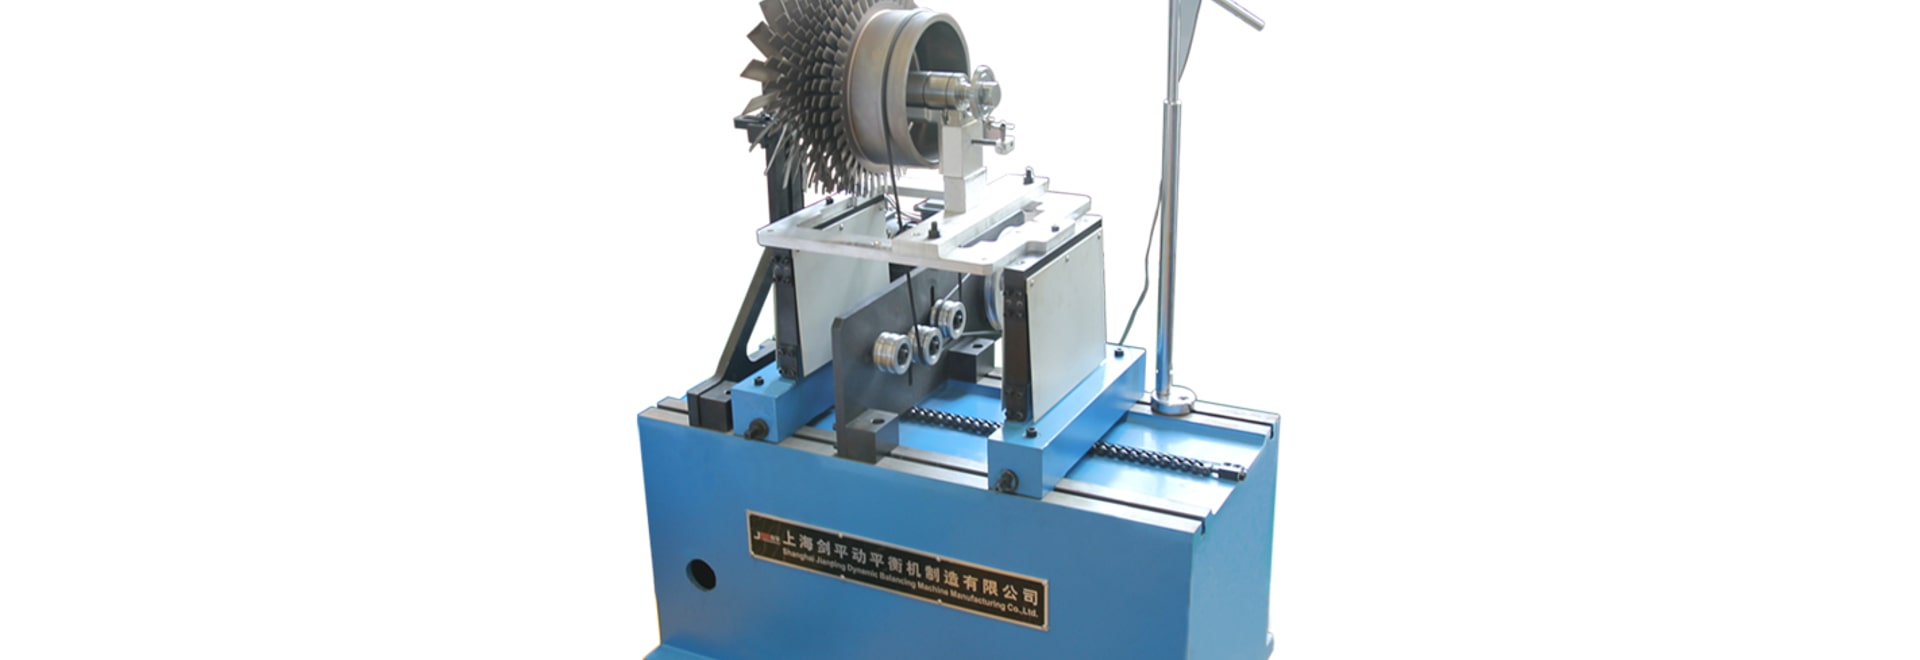 Turbo Pump Balancing Machine